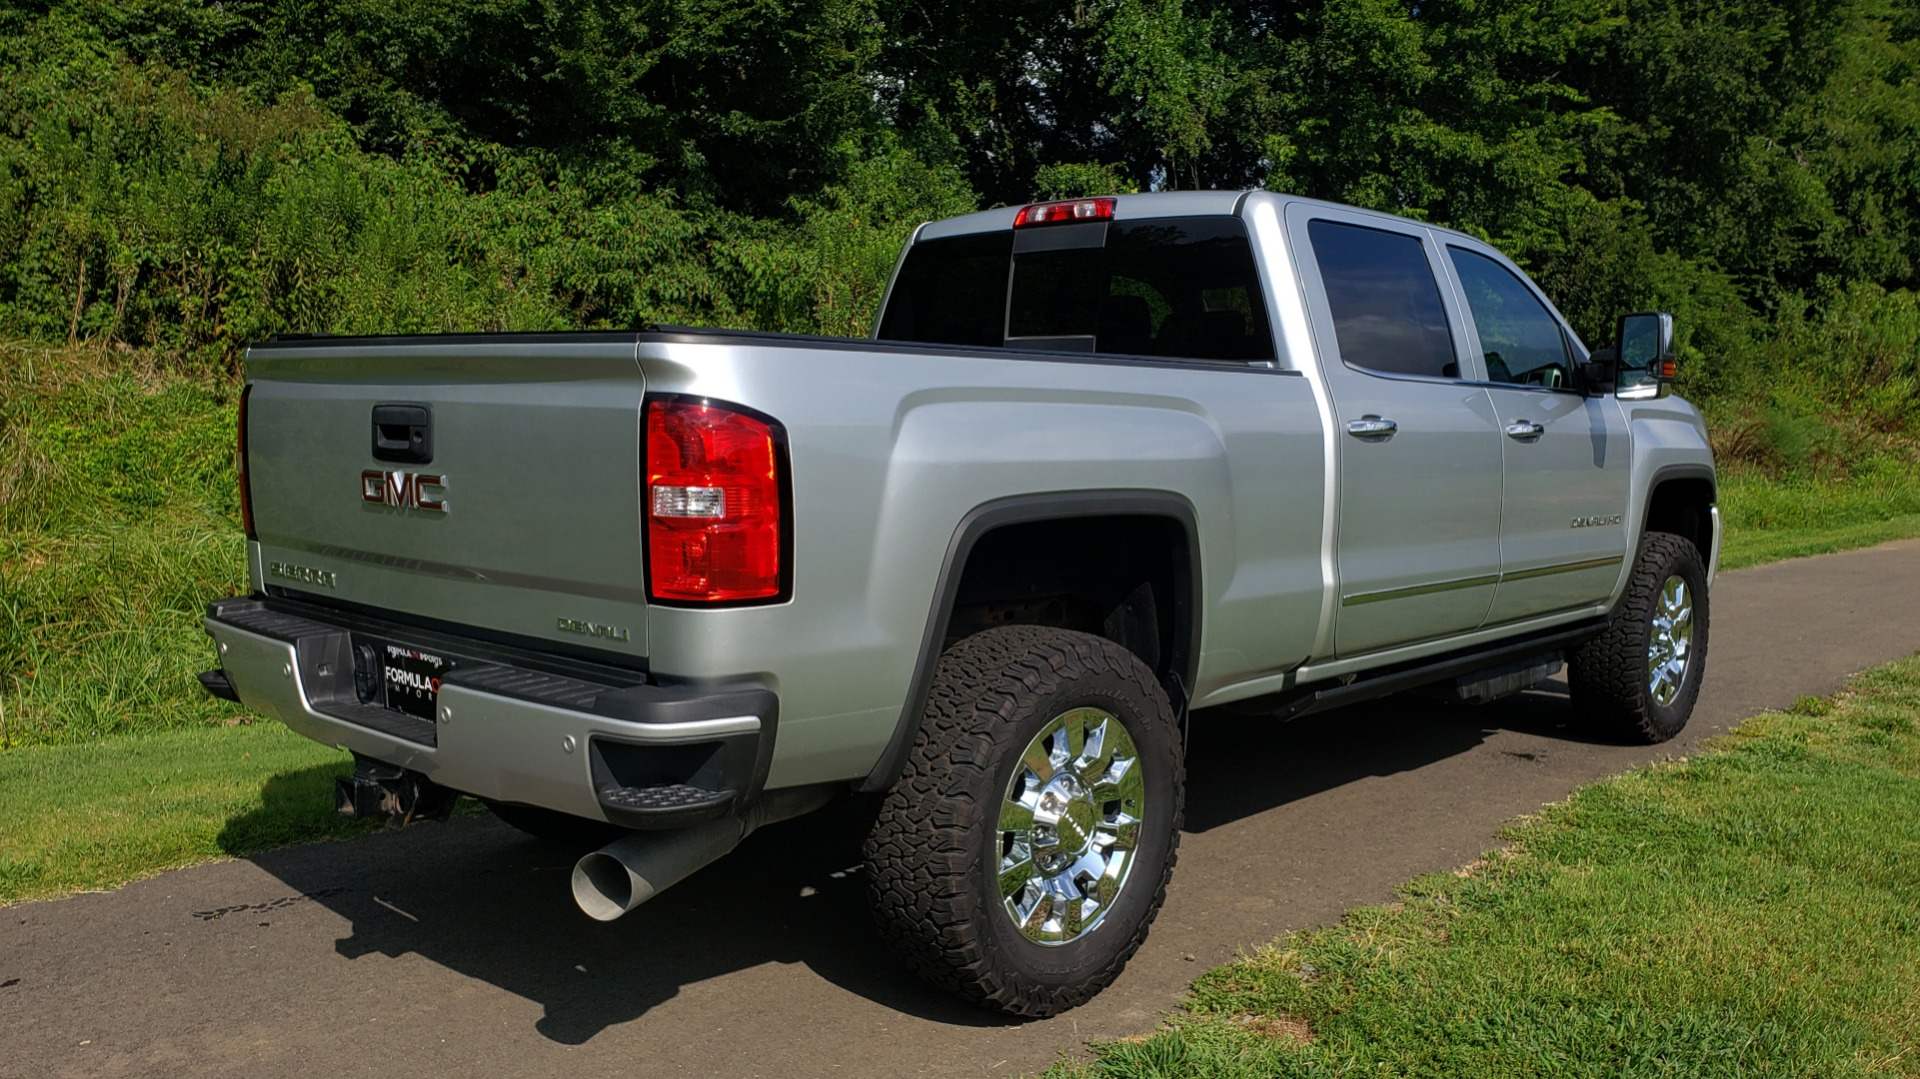 Used 2018 GMC SIERRA 2500HD DENALI 4WD / 6.6L DURAMAX / NAV / SUNROOF / BOSE / REARVIEW for sale Sold at Formula Imports in Charlotte NC 28227 12